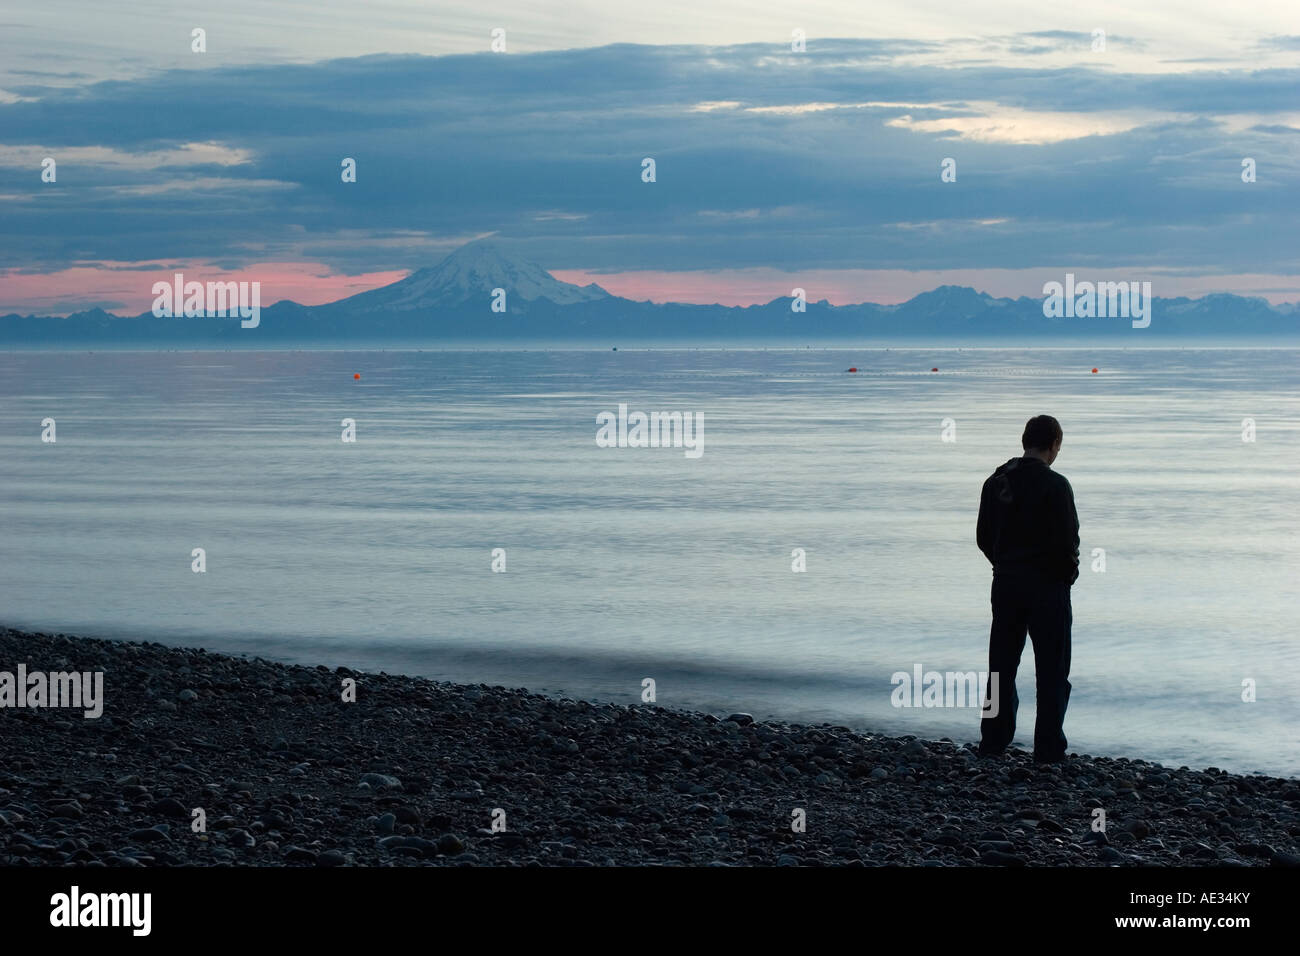 A beach of Cook Inlet, Alaska, sunset time with a silhouette of a guy standing next to the water Stock Photo